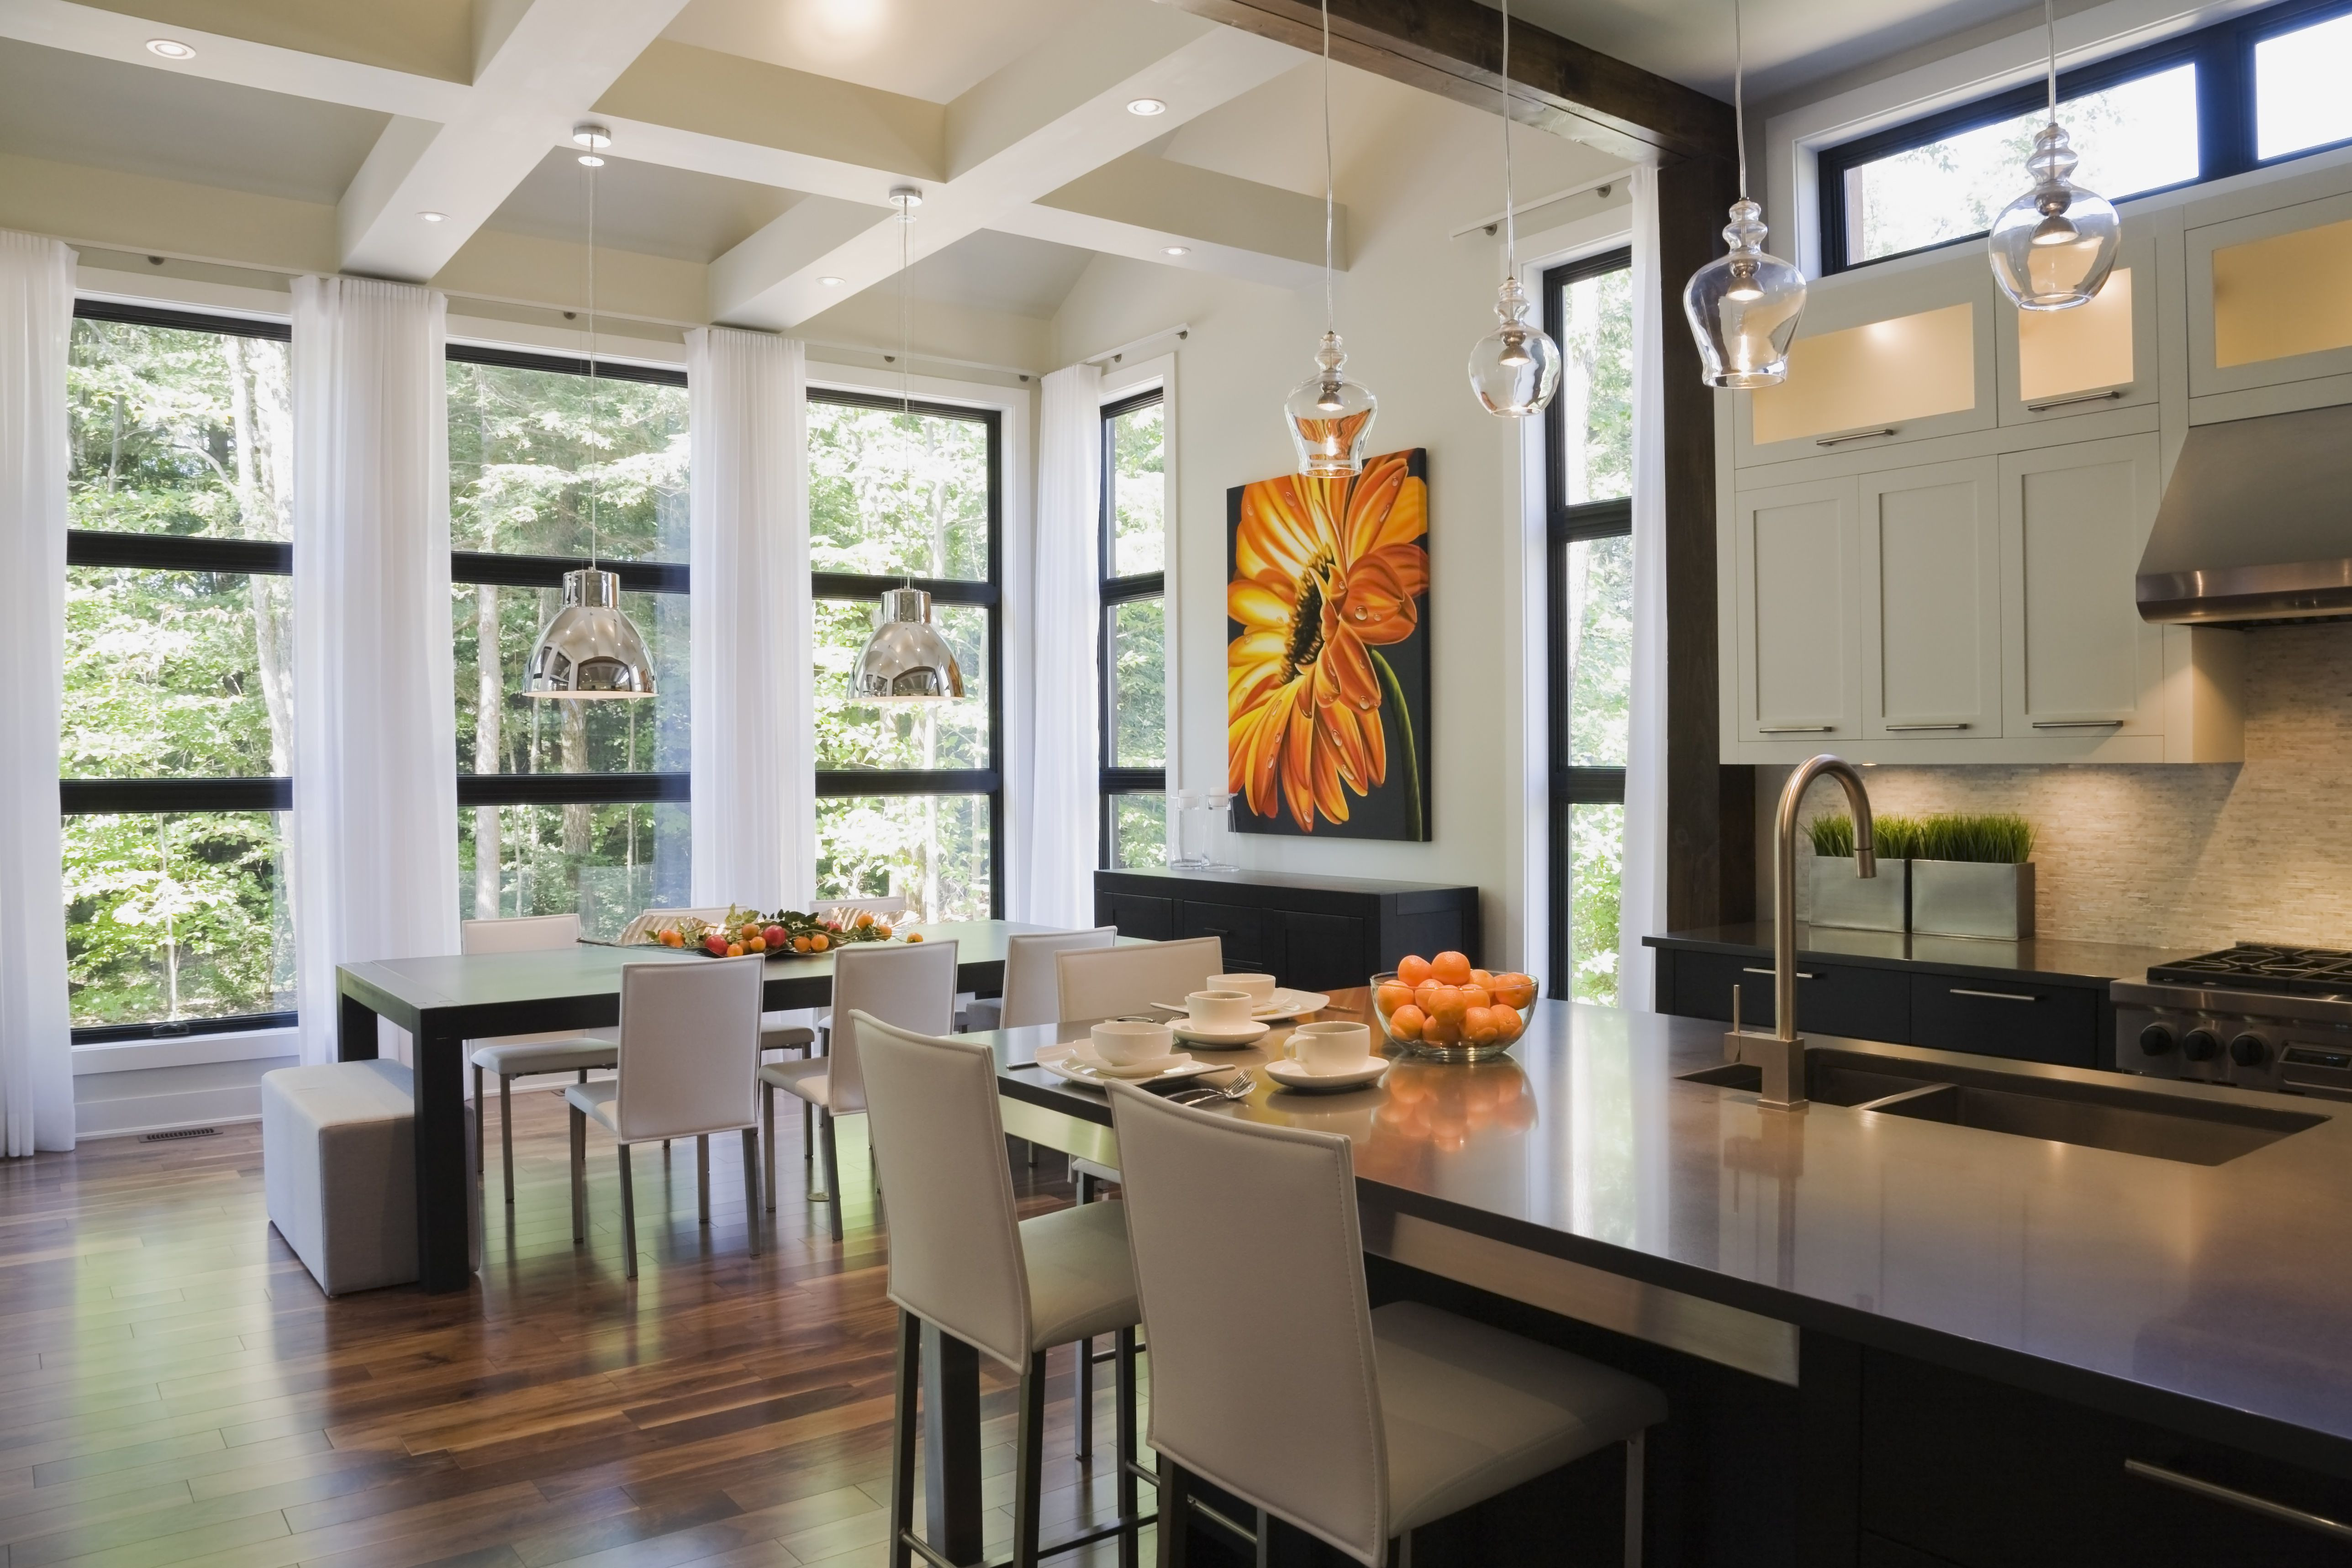 problems with hickory hardwood flooring of what you need to know about hardwood floors in kitchens within kitchen and dining room inside an upscale residential home quebec canada 519512485 5990dc4622fa3a0010356721